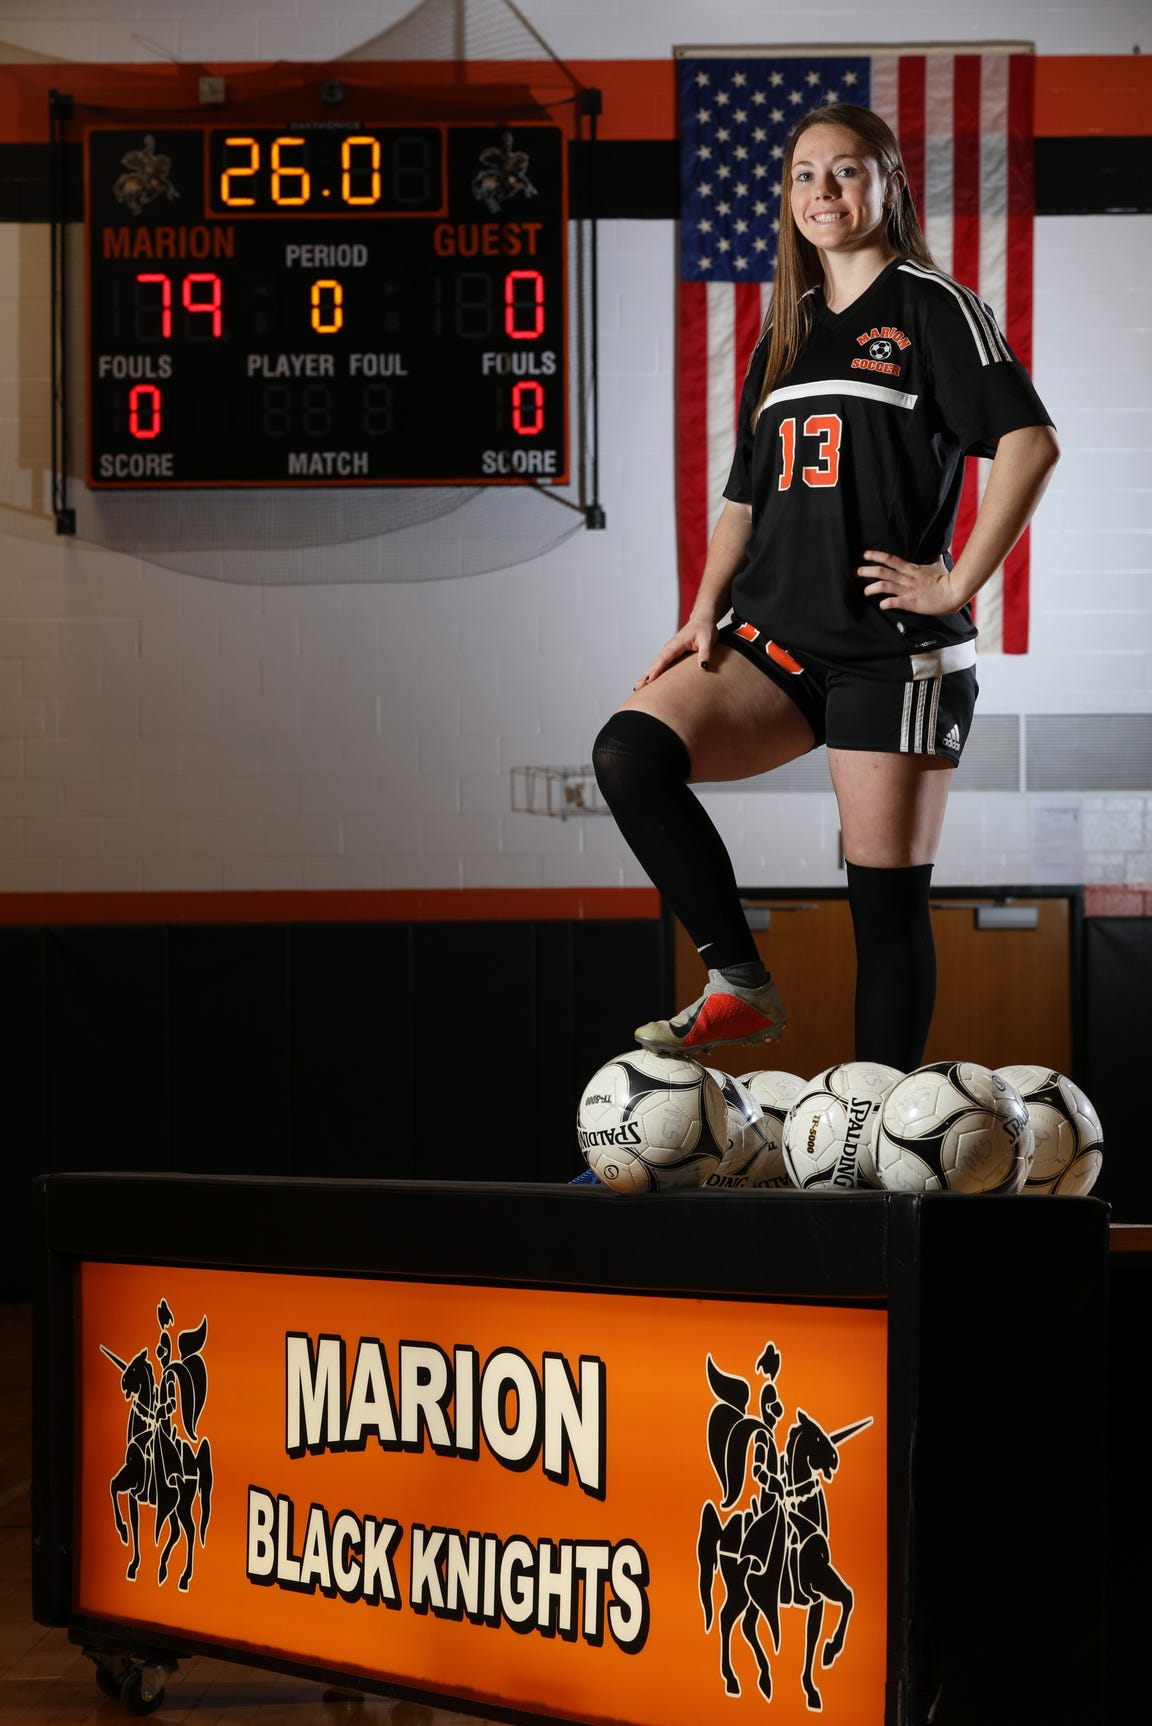 Marion junior Chloe DeLyser. 2018 ARG GIRLS SOCEER PLAYER OF THE YEAR. PLASE USE THIS AS MIAN ART.